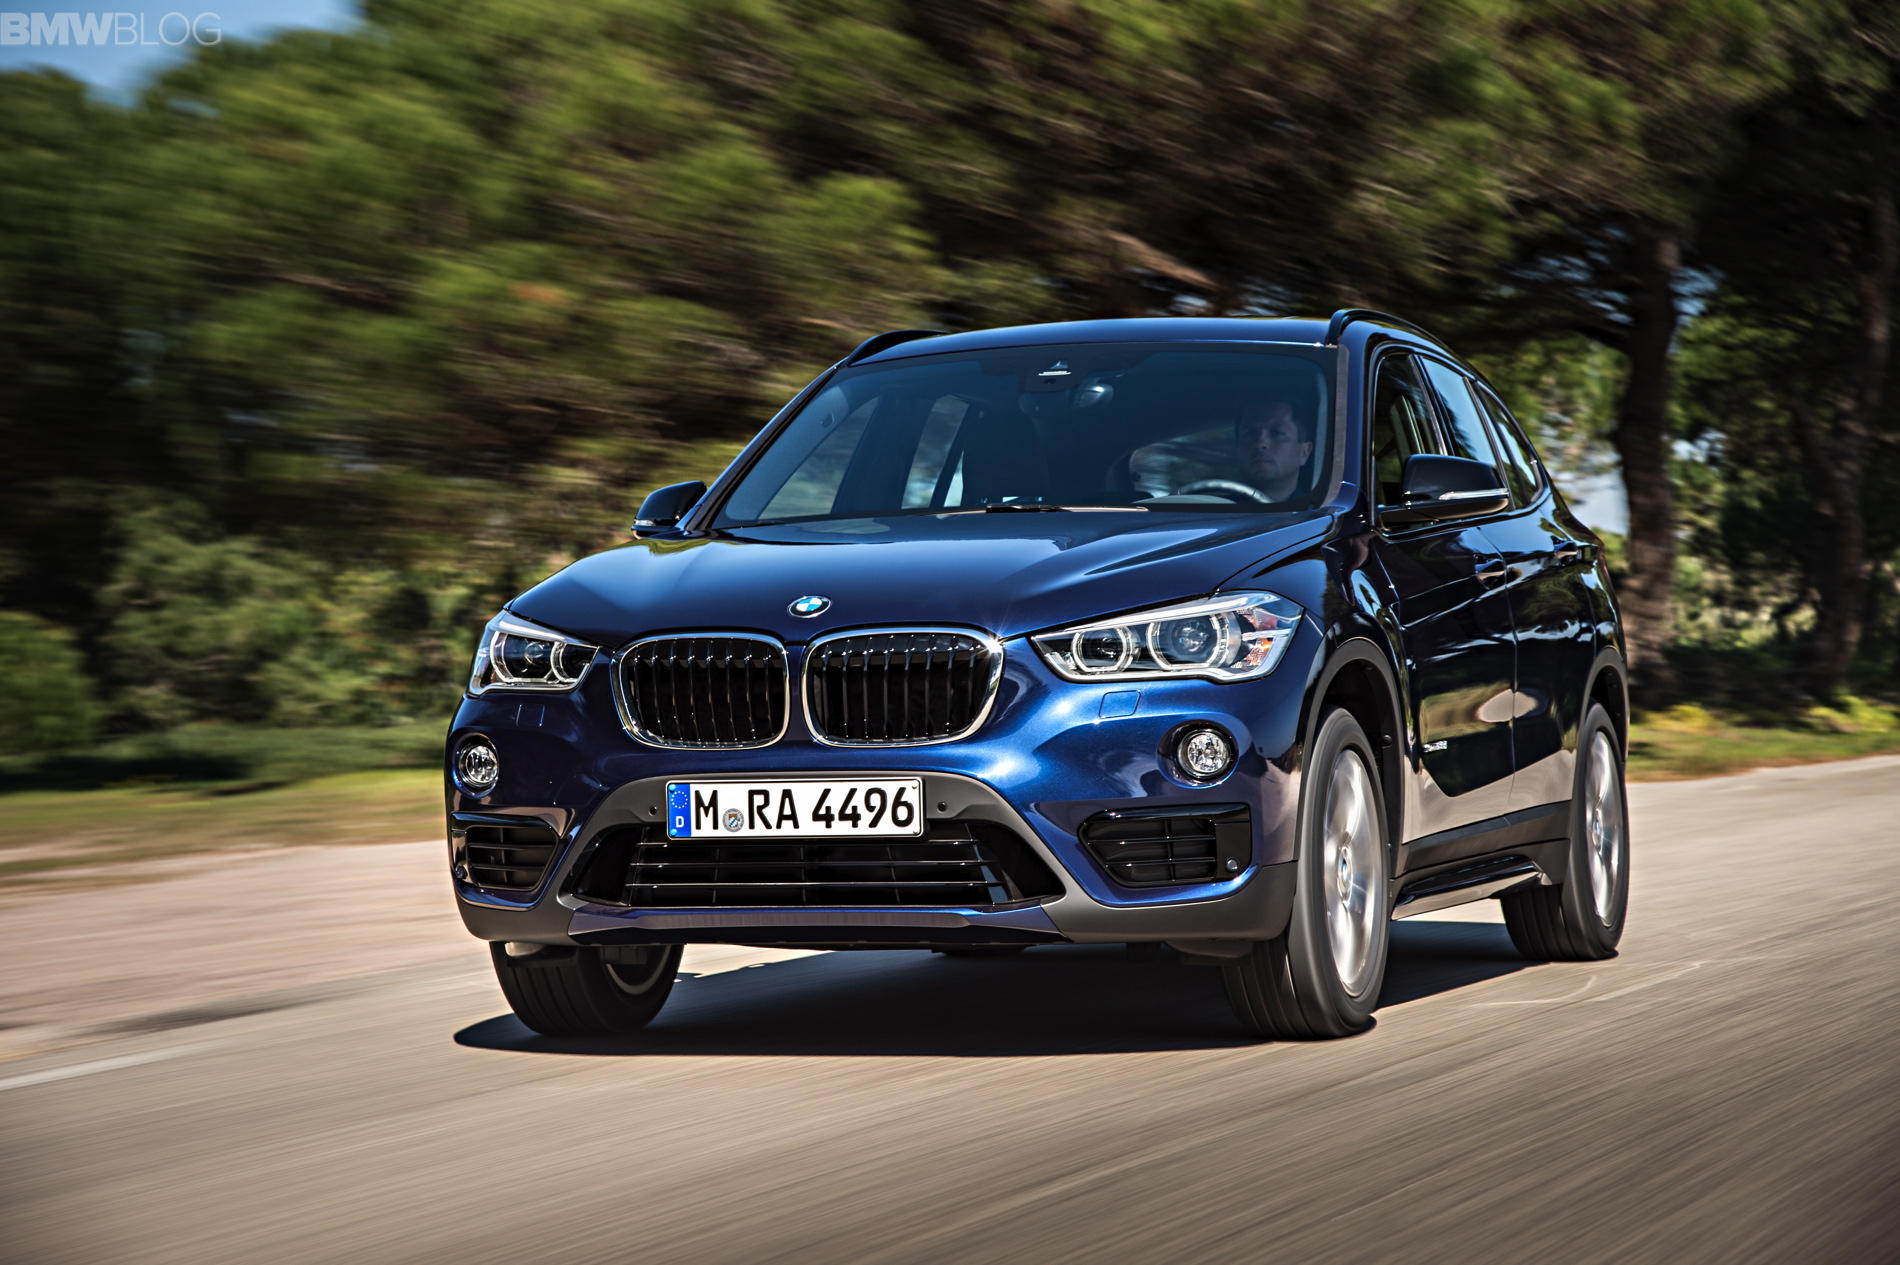 2016 BMW X1 M Sport Package 1900x1200 images 09